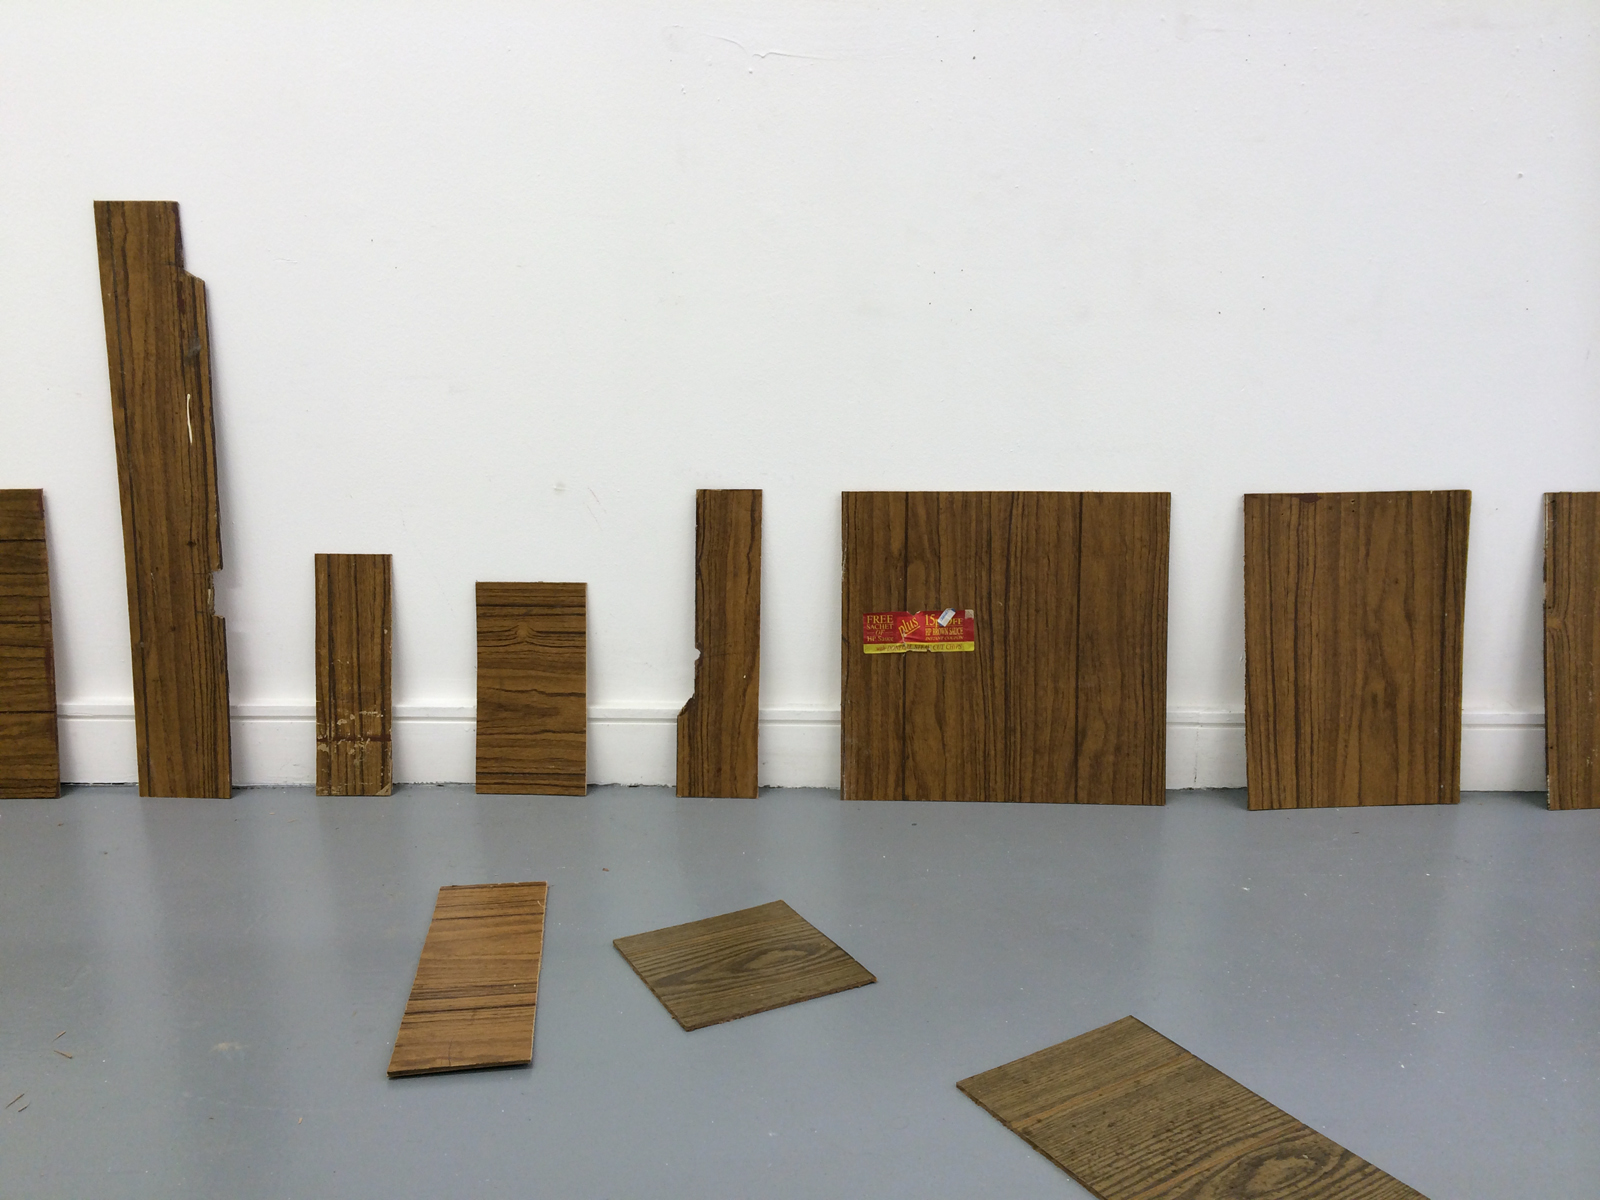 11 wood panel pieces of various shapes leaning against a wall and on the floor.